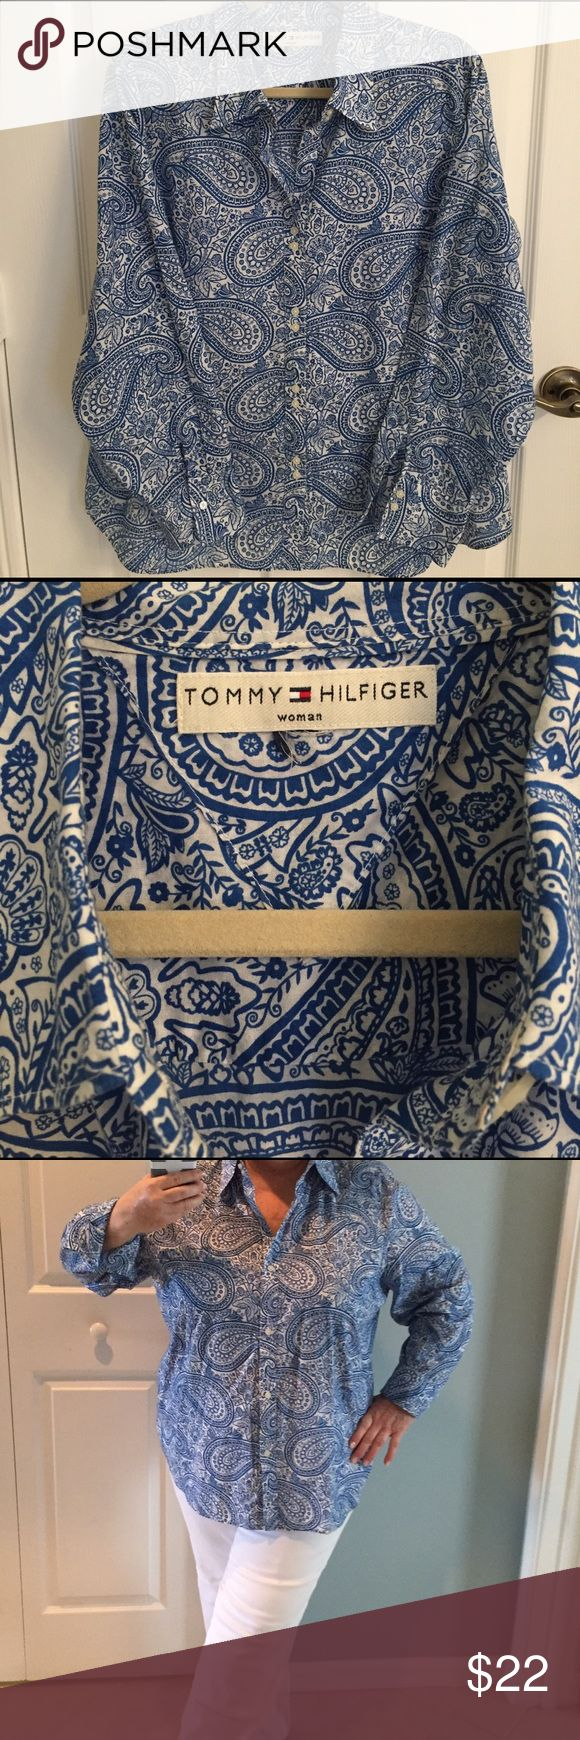 Tommy Hilfiger Blue & White tailored Plus shirt. 100% cool Cotton and lightweight. Perfect for those warm summer days... Looks great with white or denim pants. Excellent barely worn condition. I cut off size tag because it bothered my neck but true to size 16. Tommy Hilfiger Tops Button Down Shirts